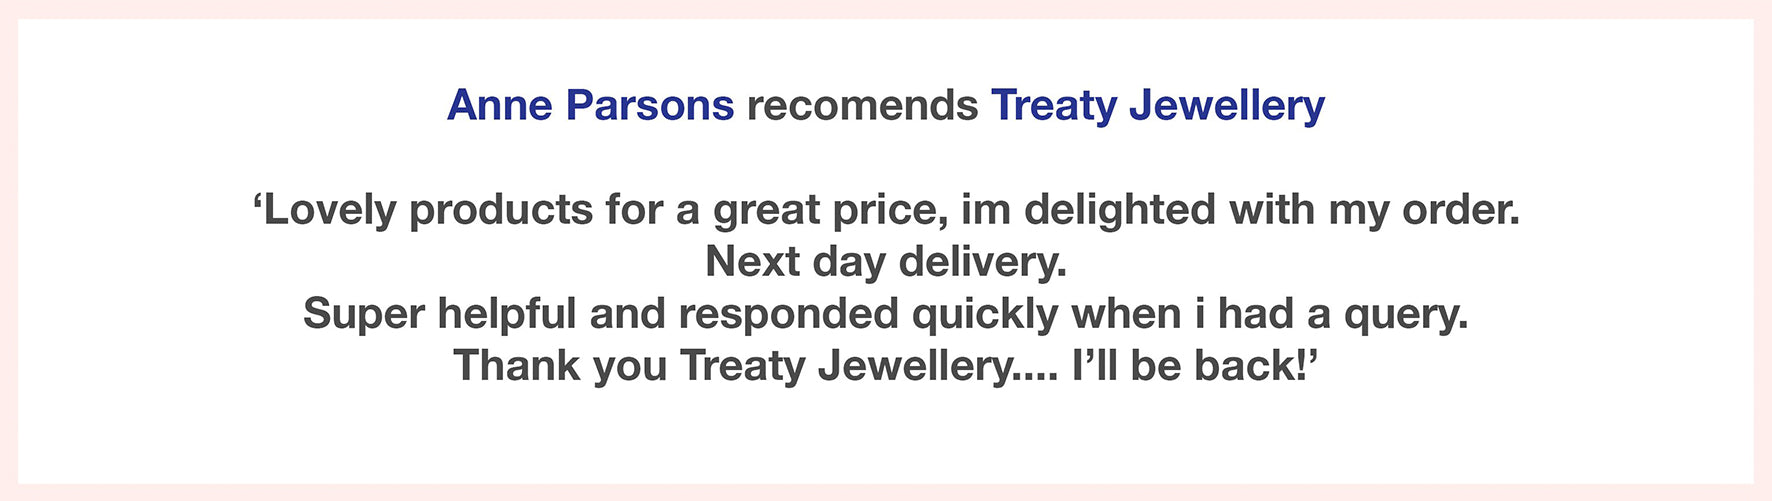 Treaty Customer Reviews 5 stars for silver jewellery